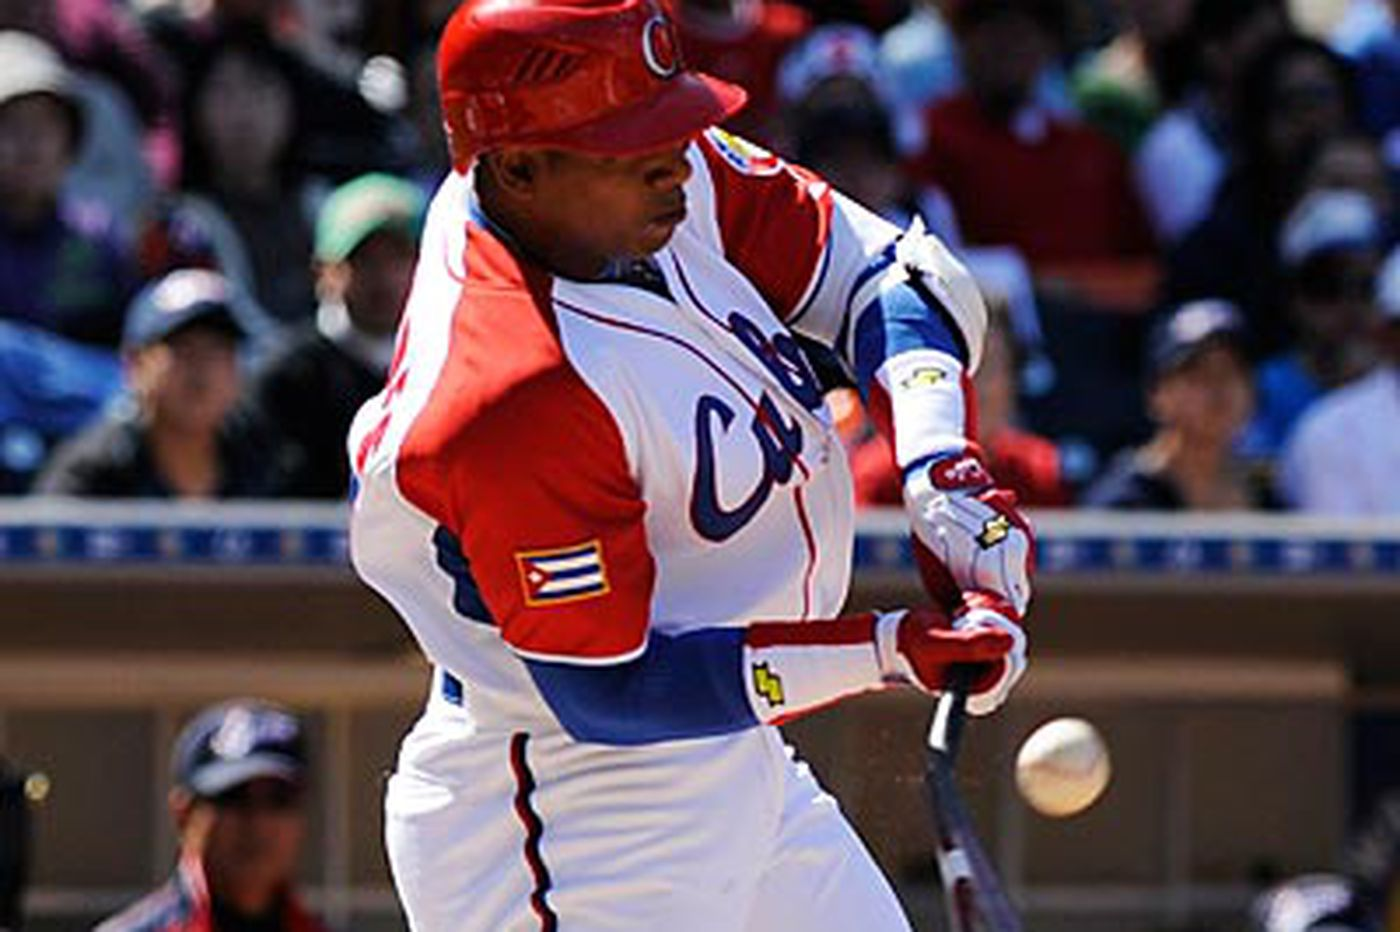 Inside the Phillies: Will Phillies bid for two young Cuban sluggers?